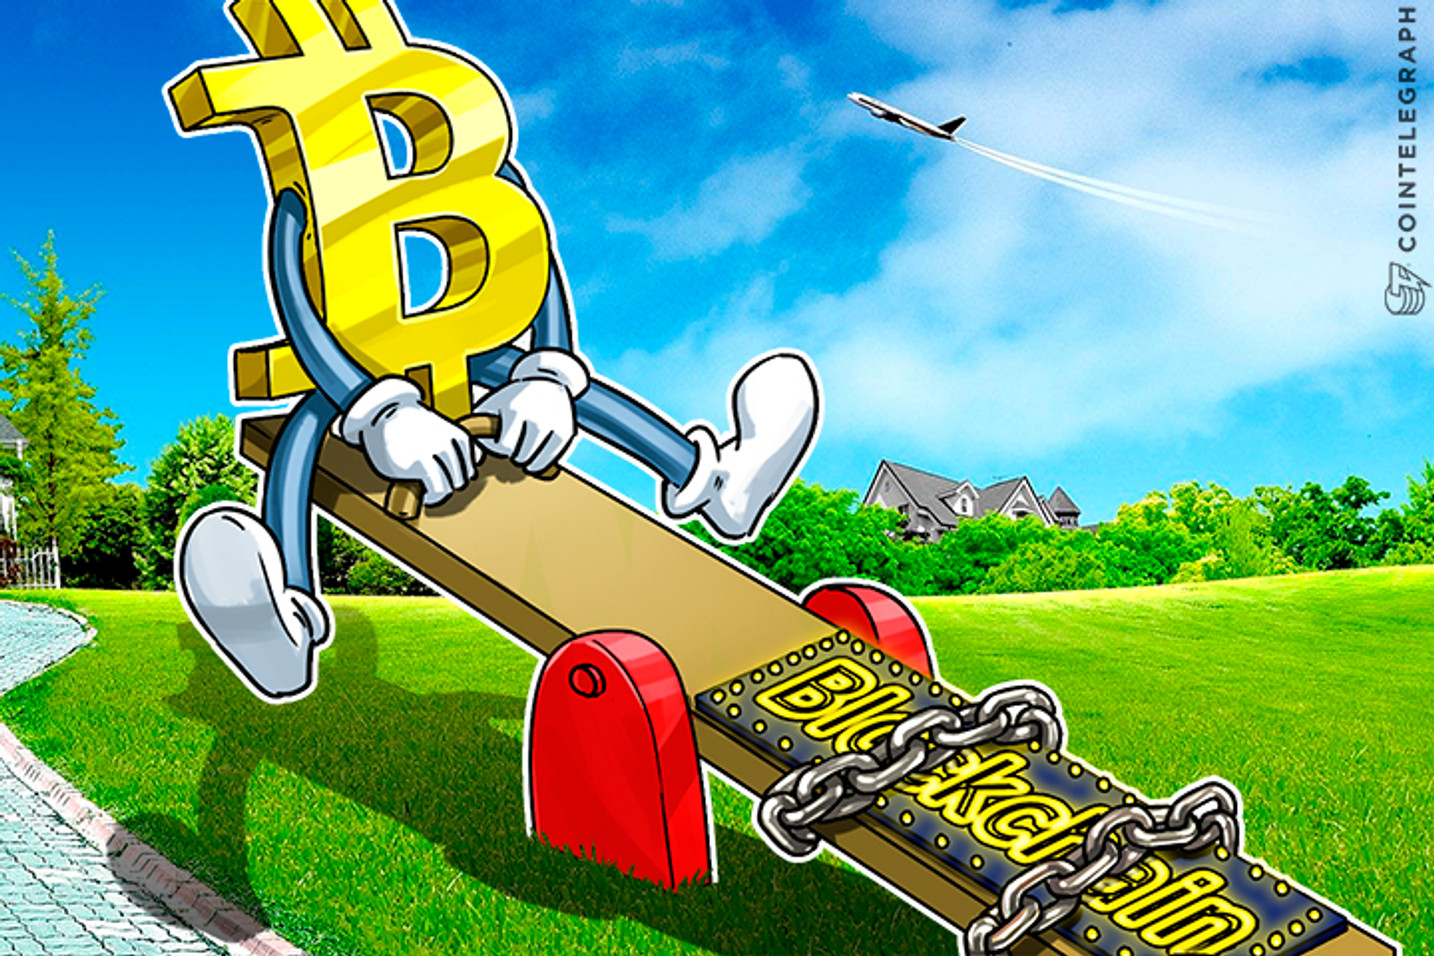 Bitcoin Price Ebbs and Flows Make Bitcoin, Blockchain Two Ends of Seesaw